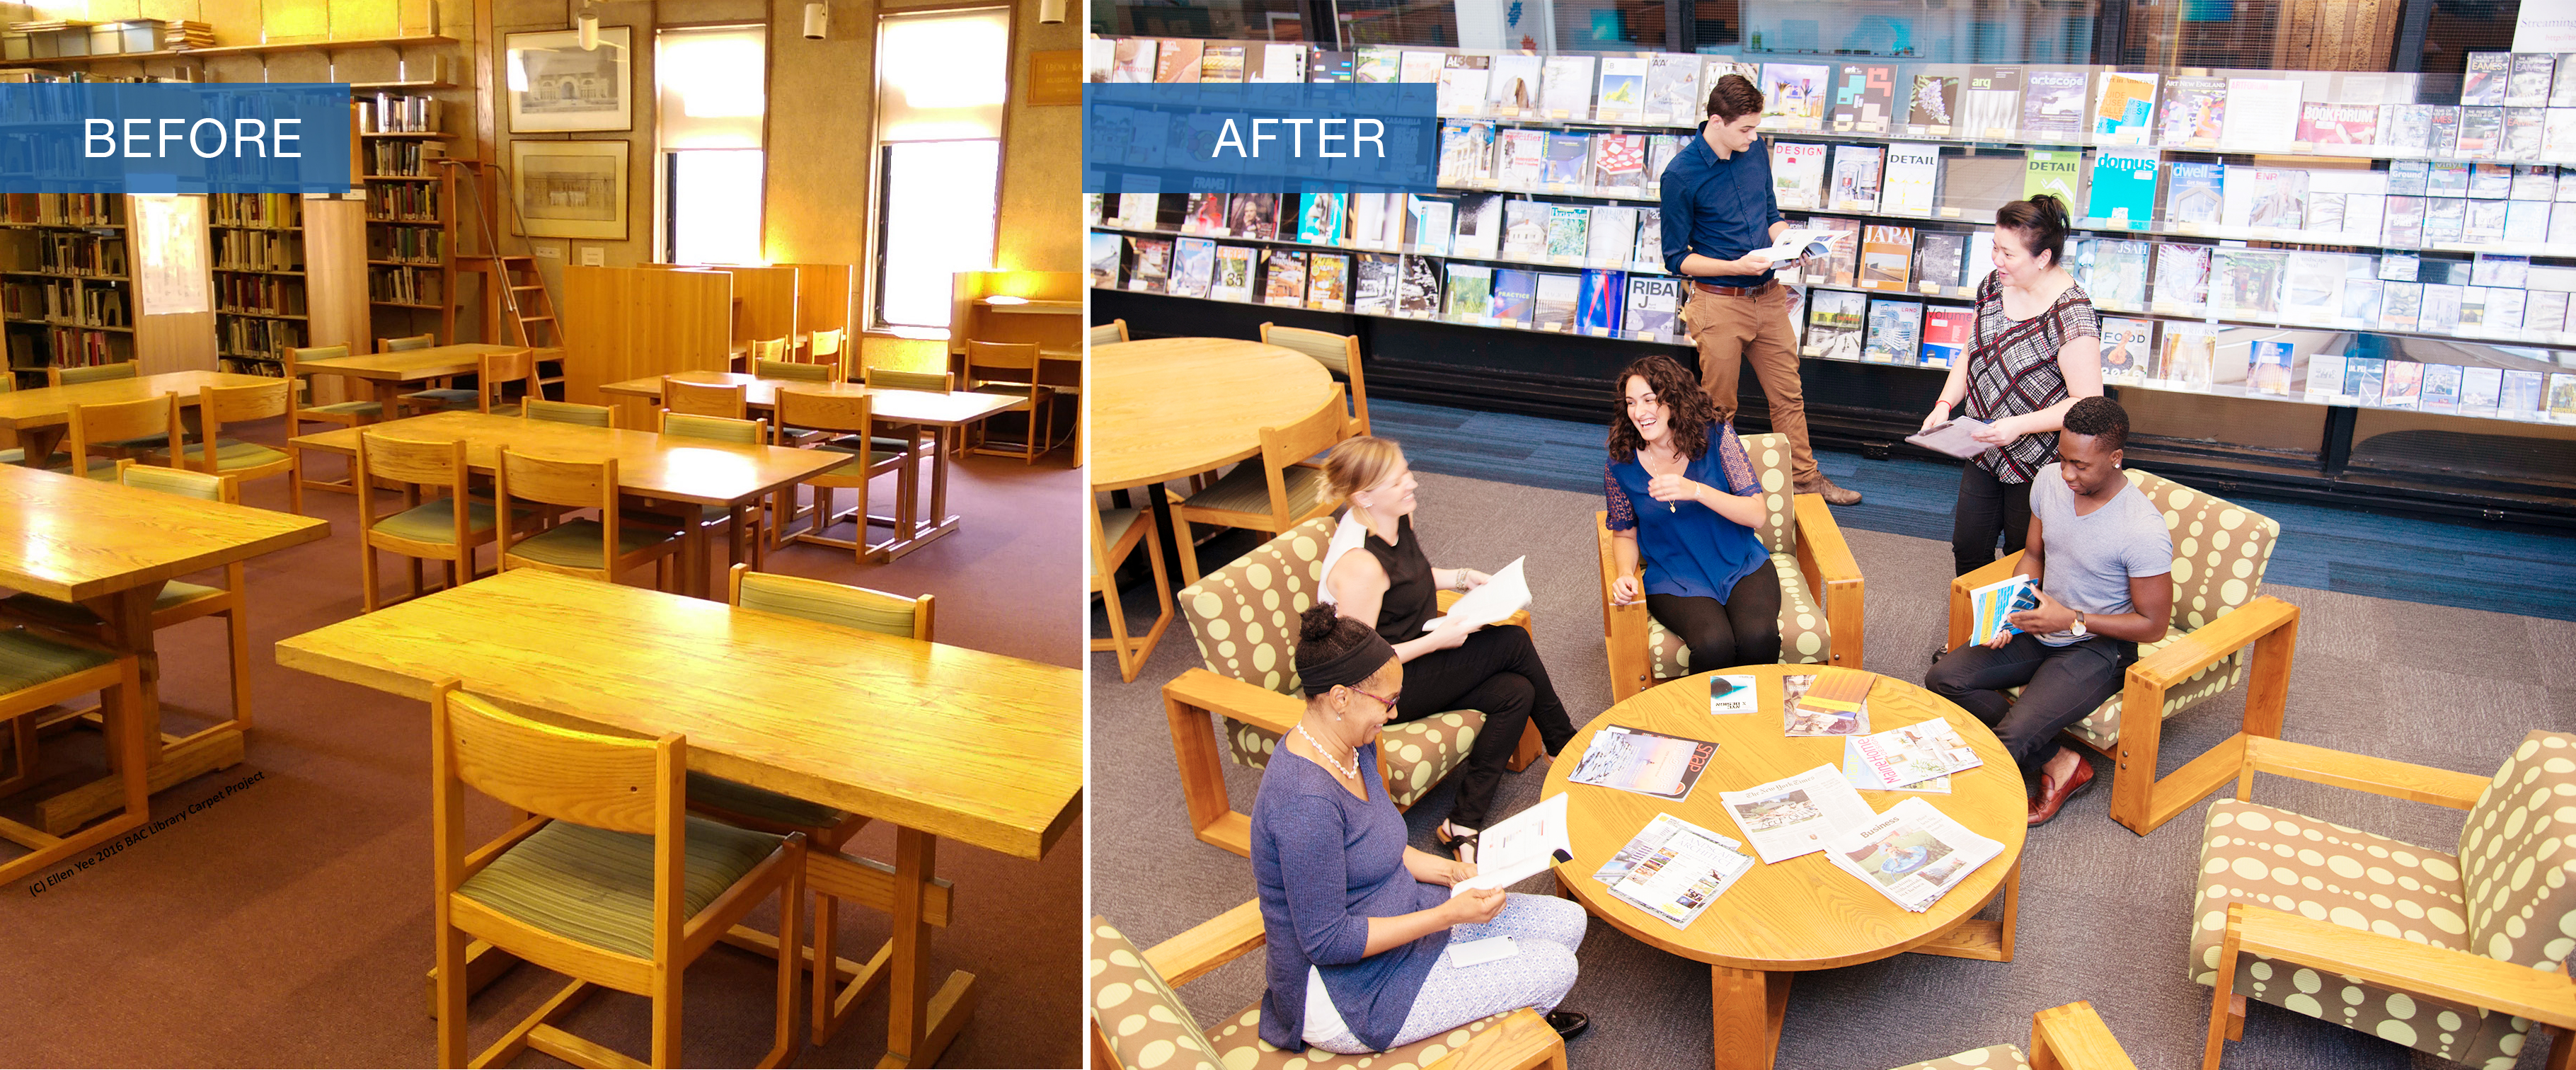 Boston Architectural College BAC Library Before After